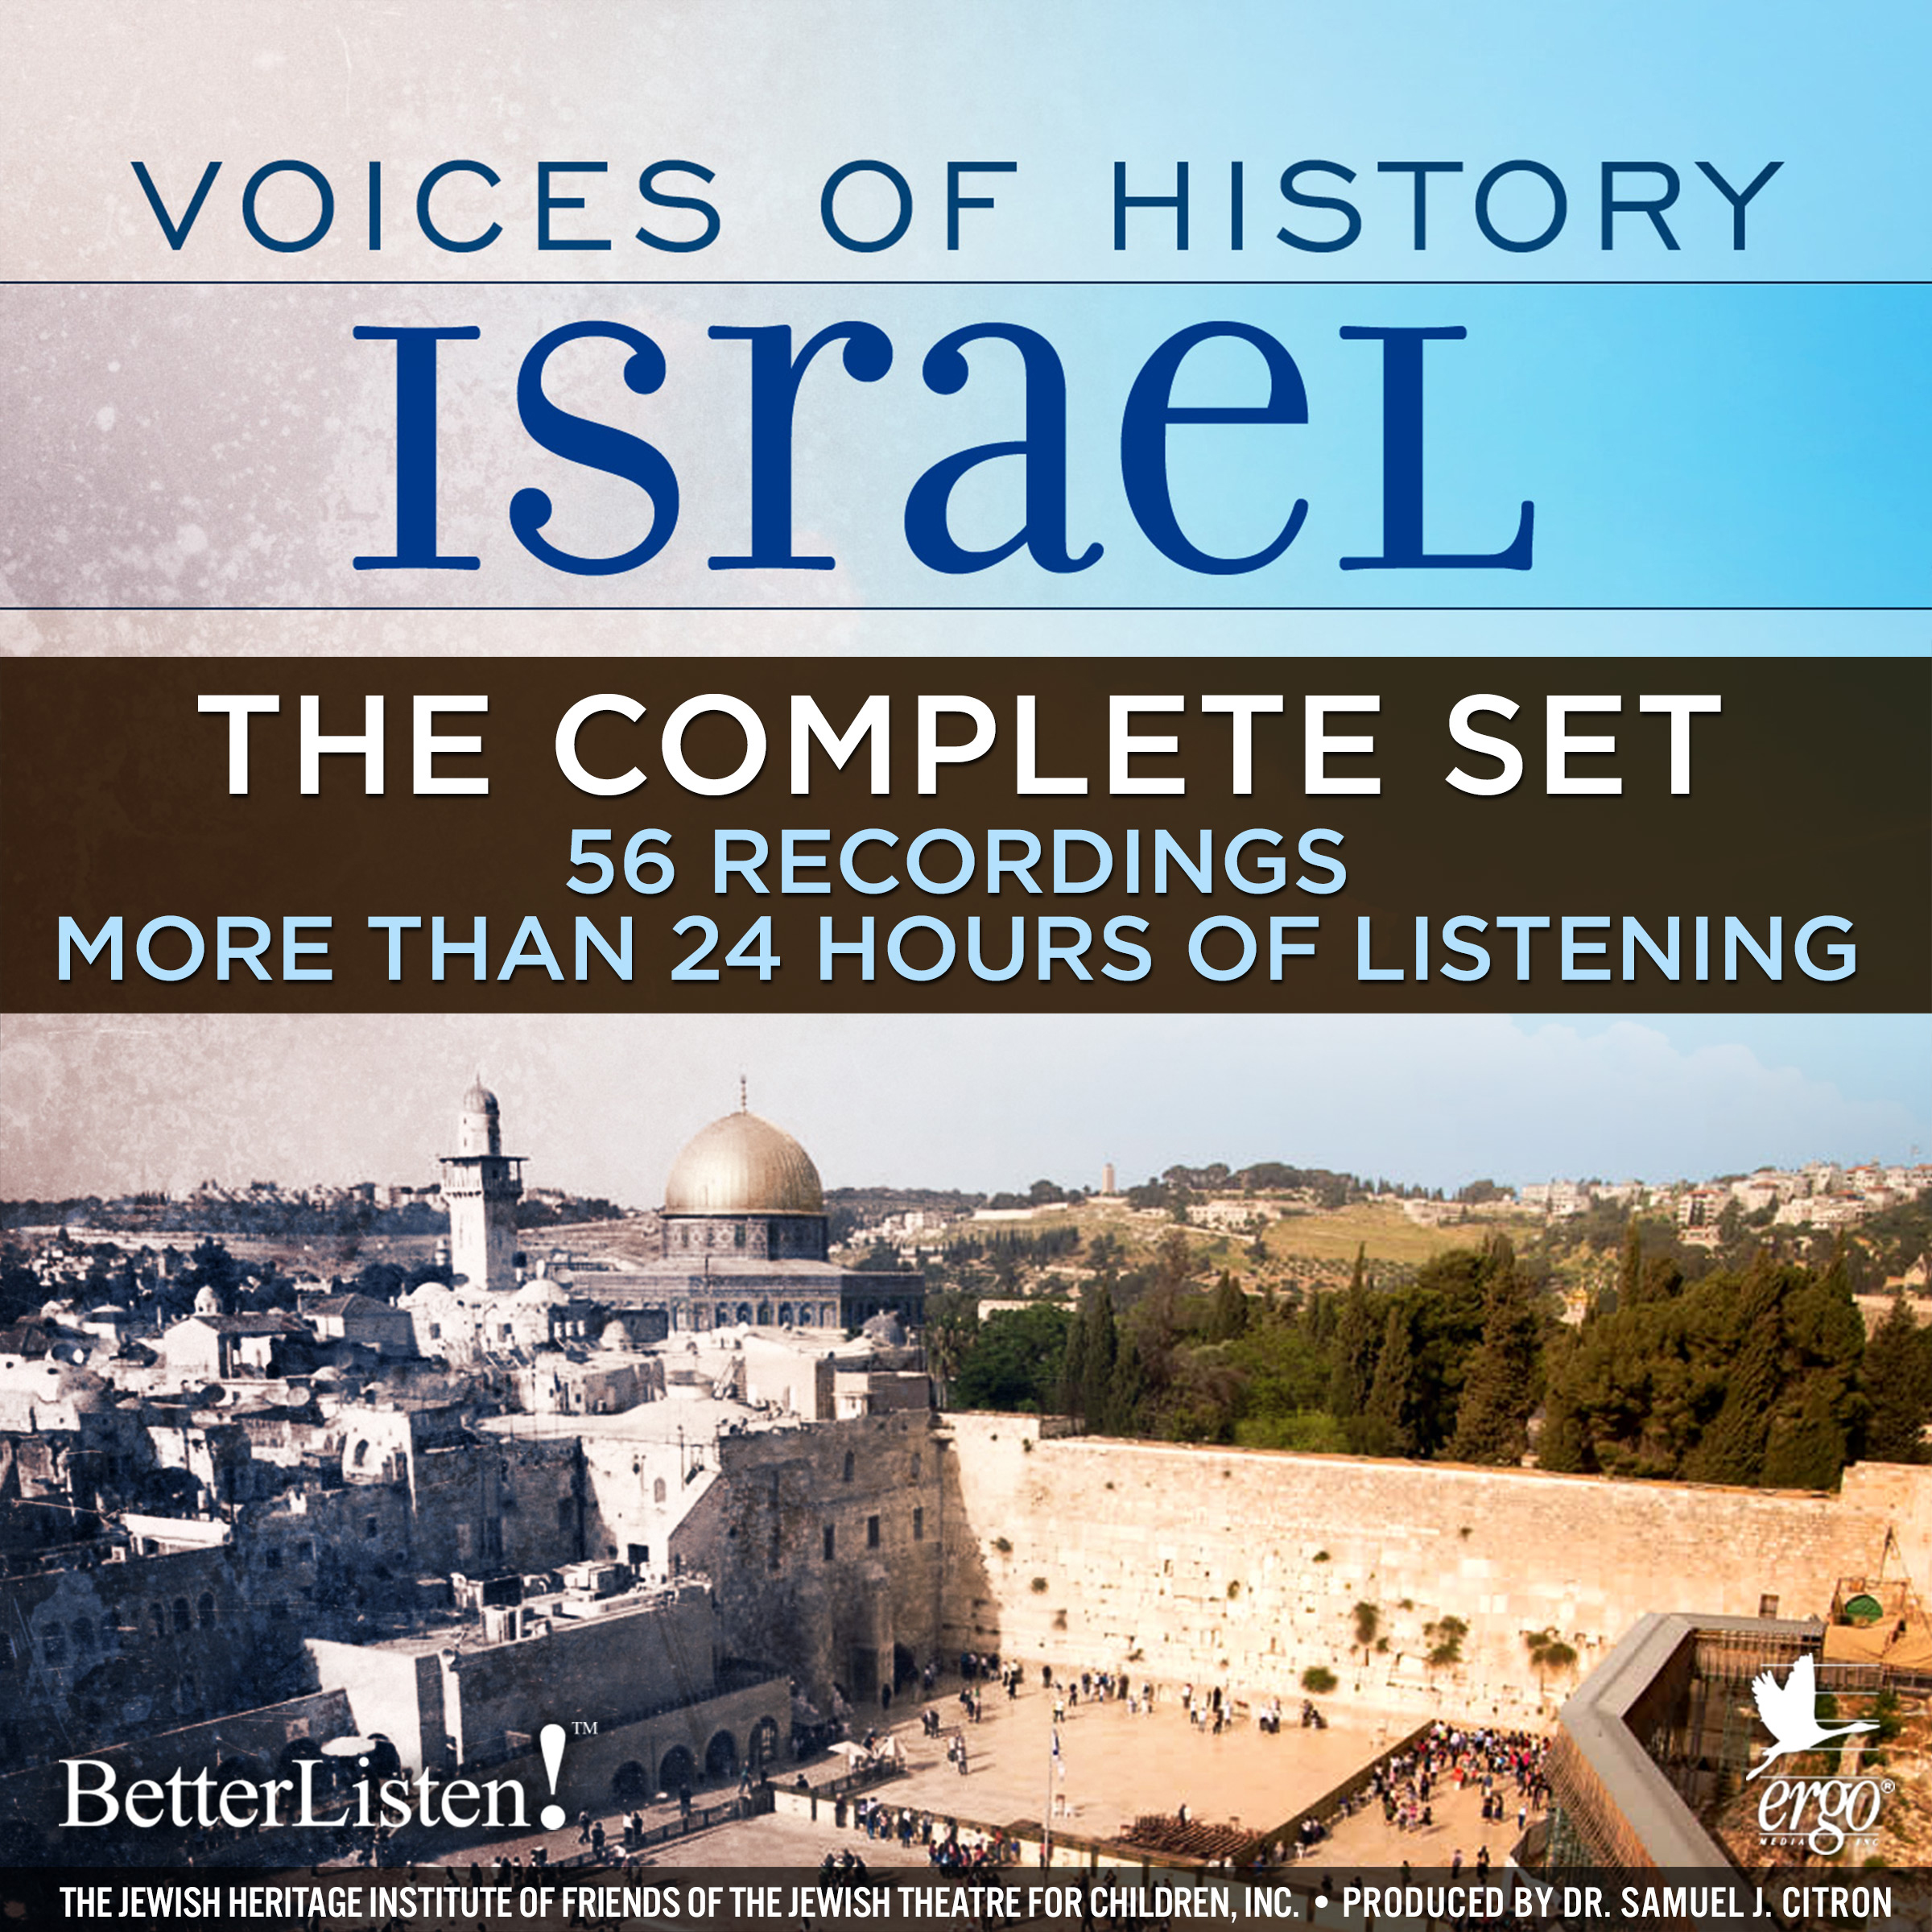 Voices of History Israel: The Complete Set